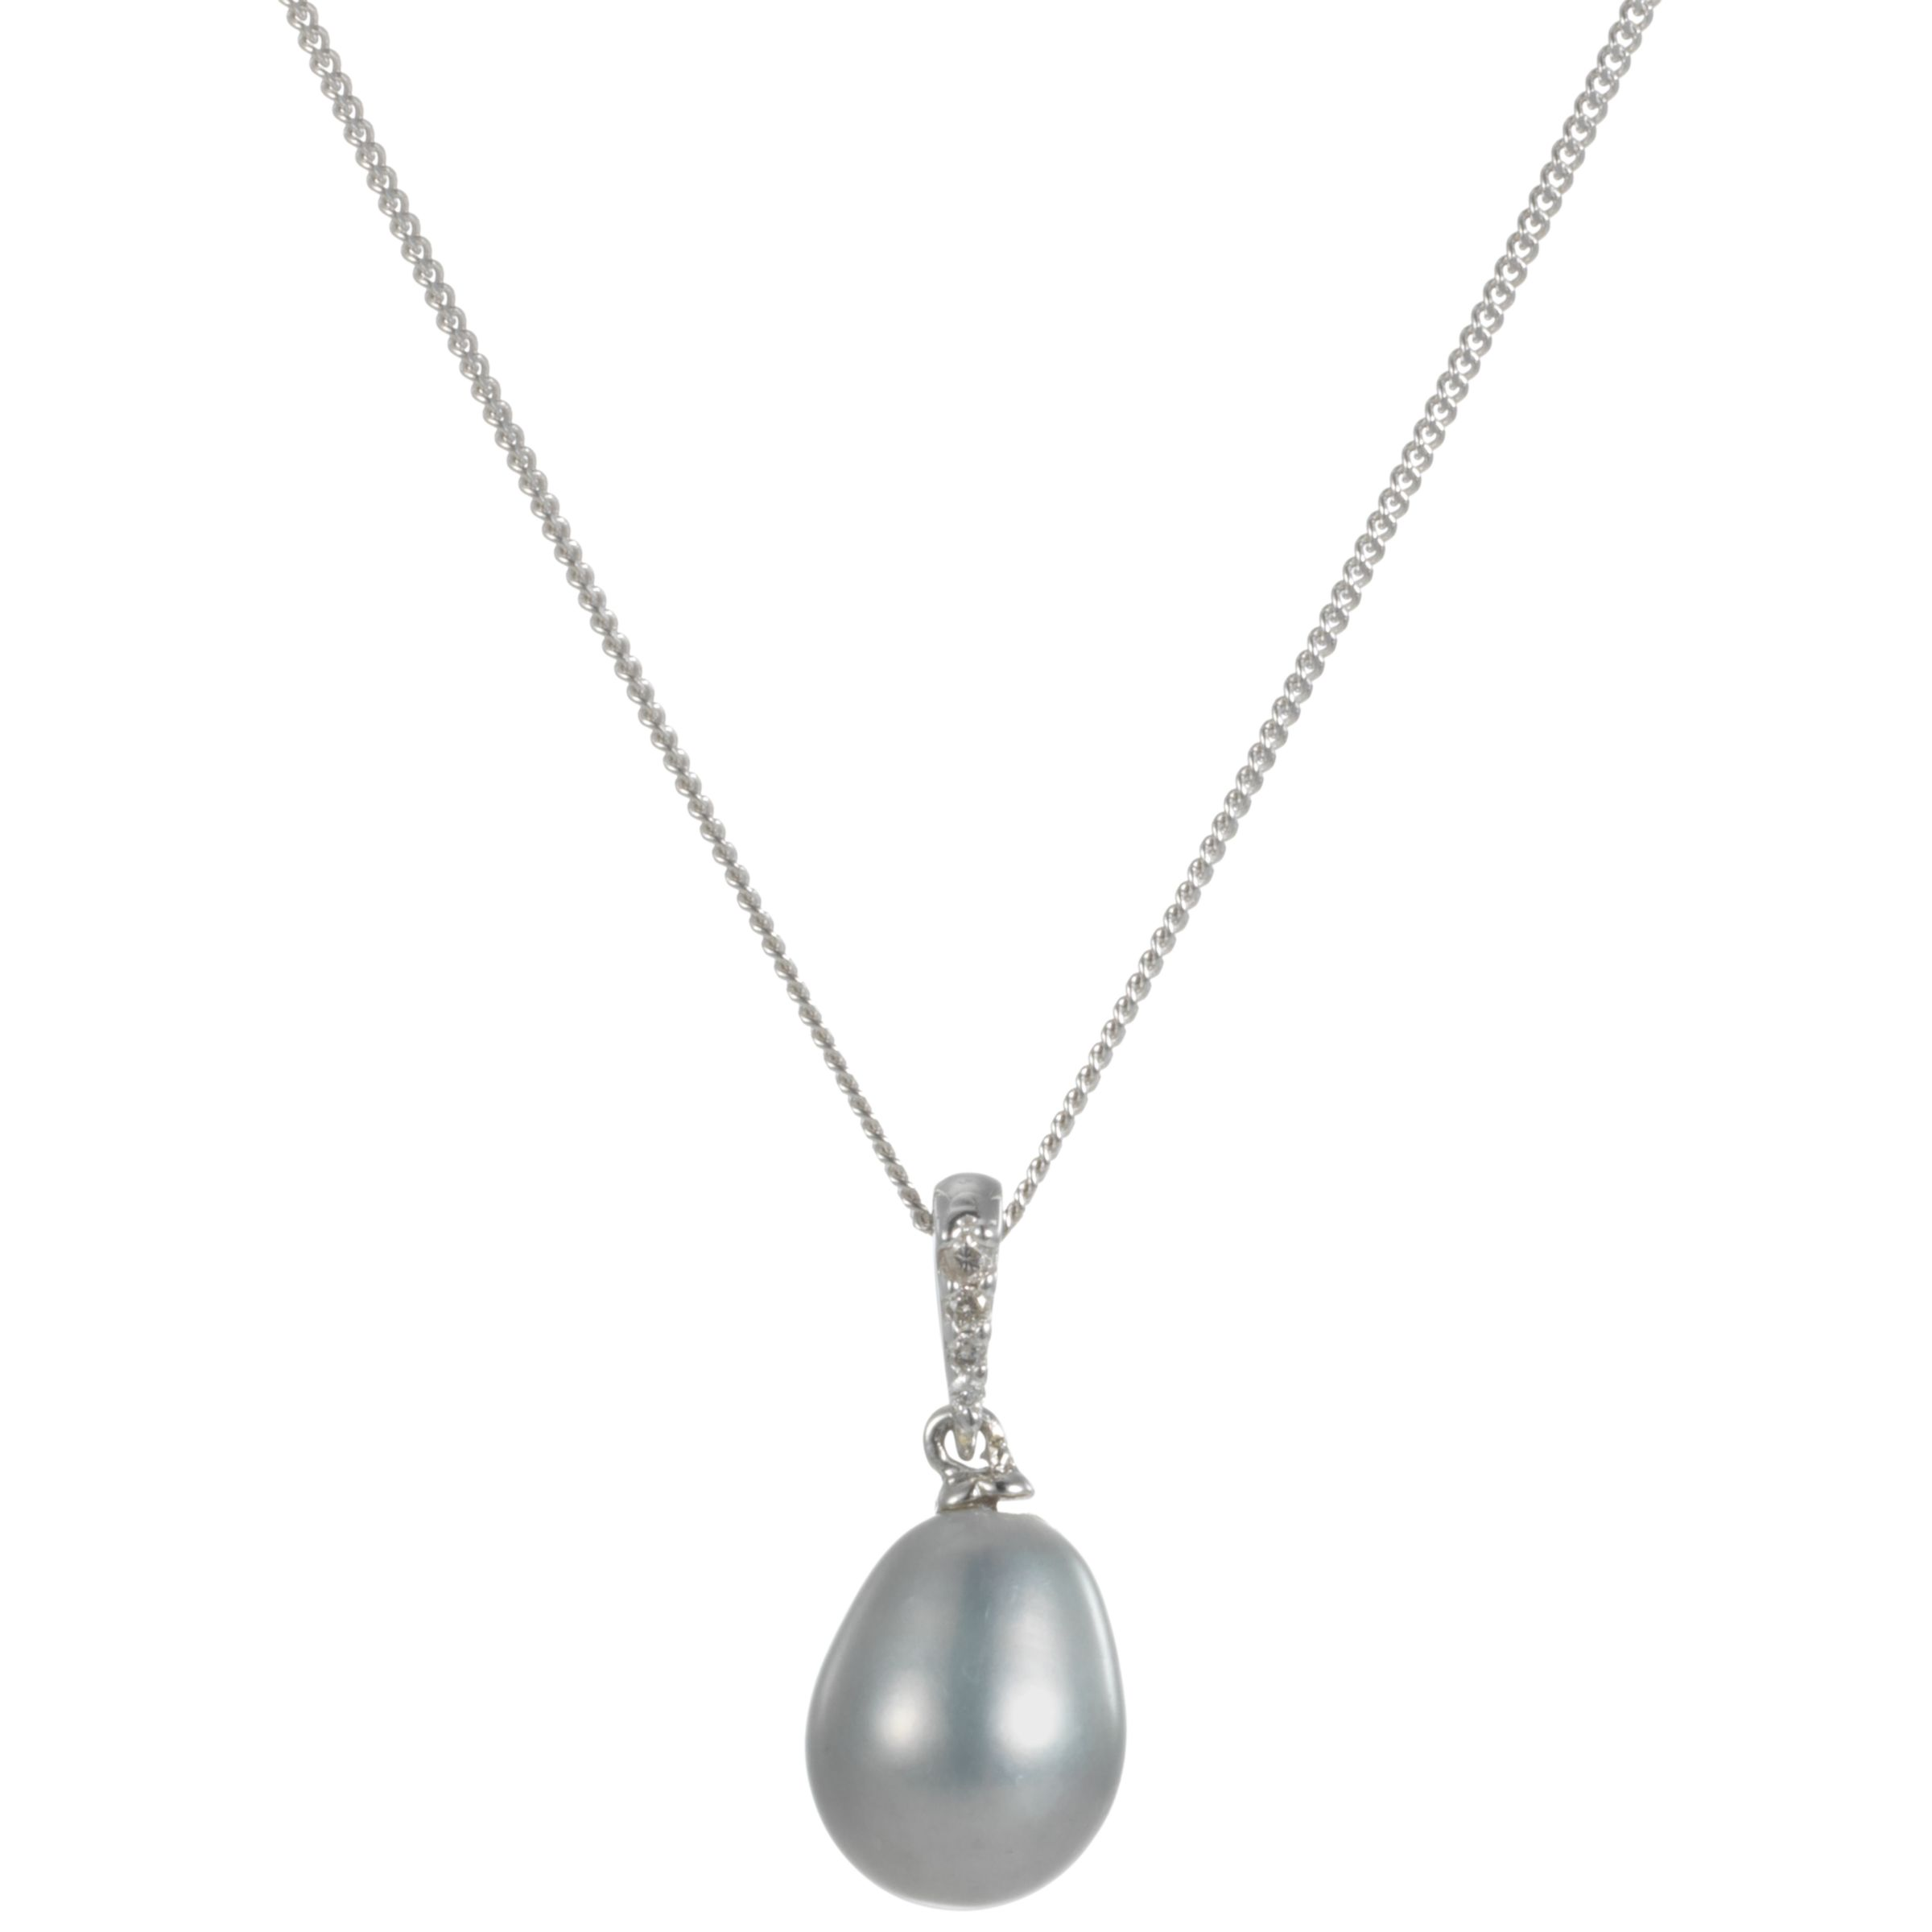 9ct White Gold Grey Freshwater Pearl and Diamond Pendant Necklace